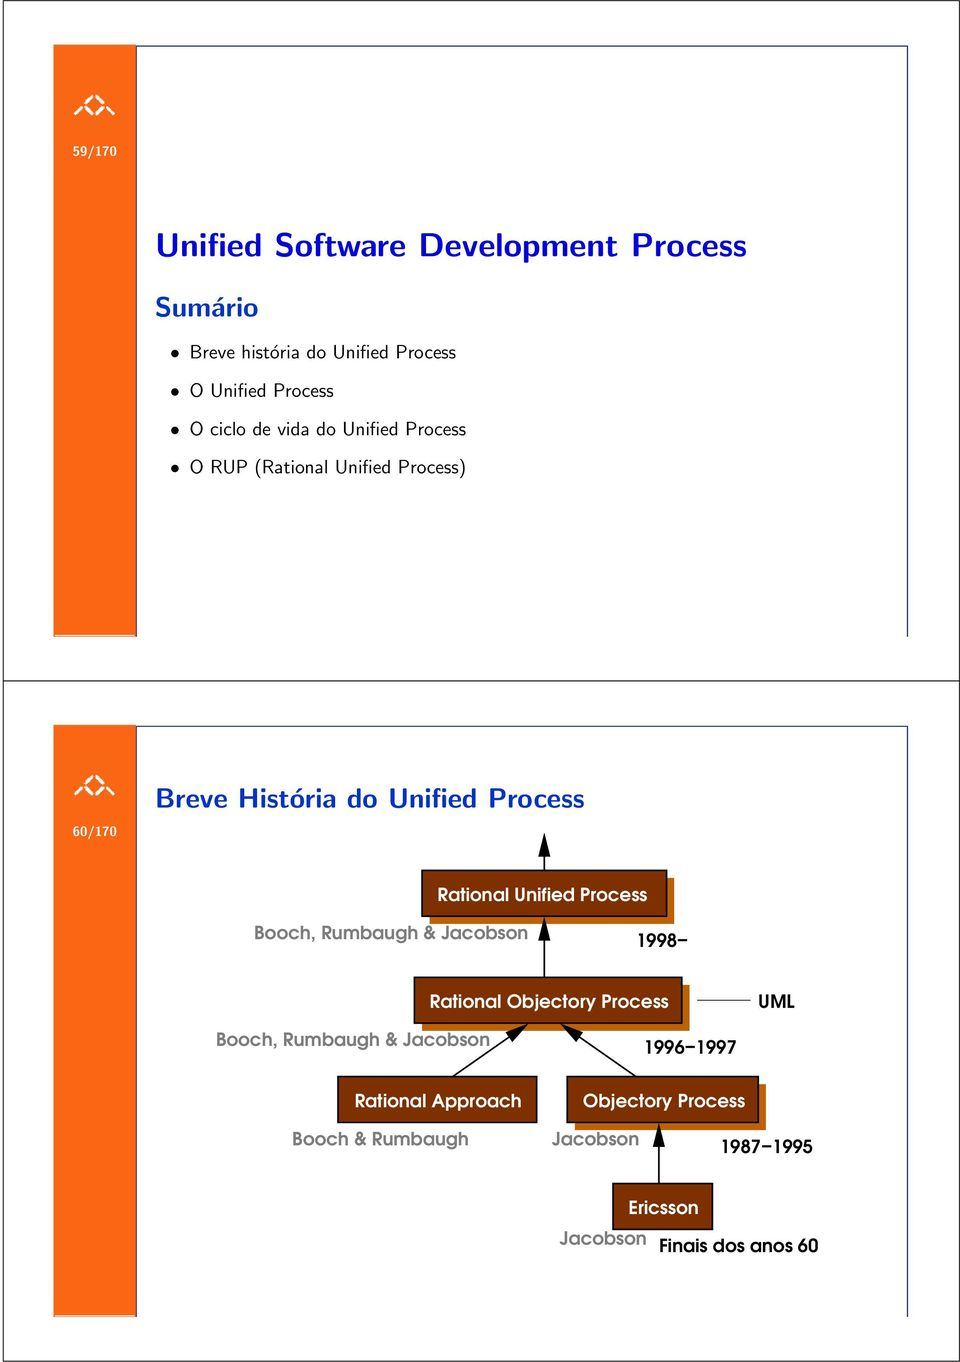 Unified Process Booch, Rumbaugh & Jacobson 1998 Rational Objectory Process UML Booch, Rumbaugh & Jacobson 1996